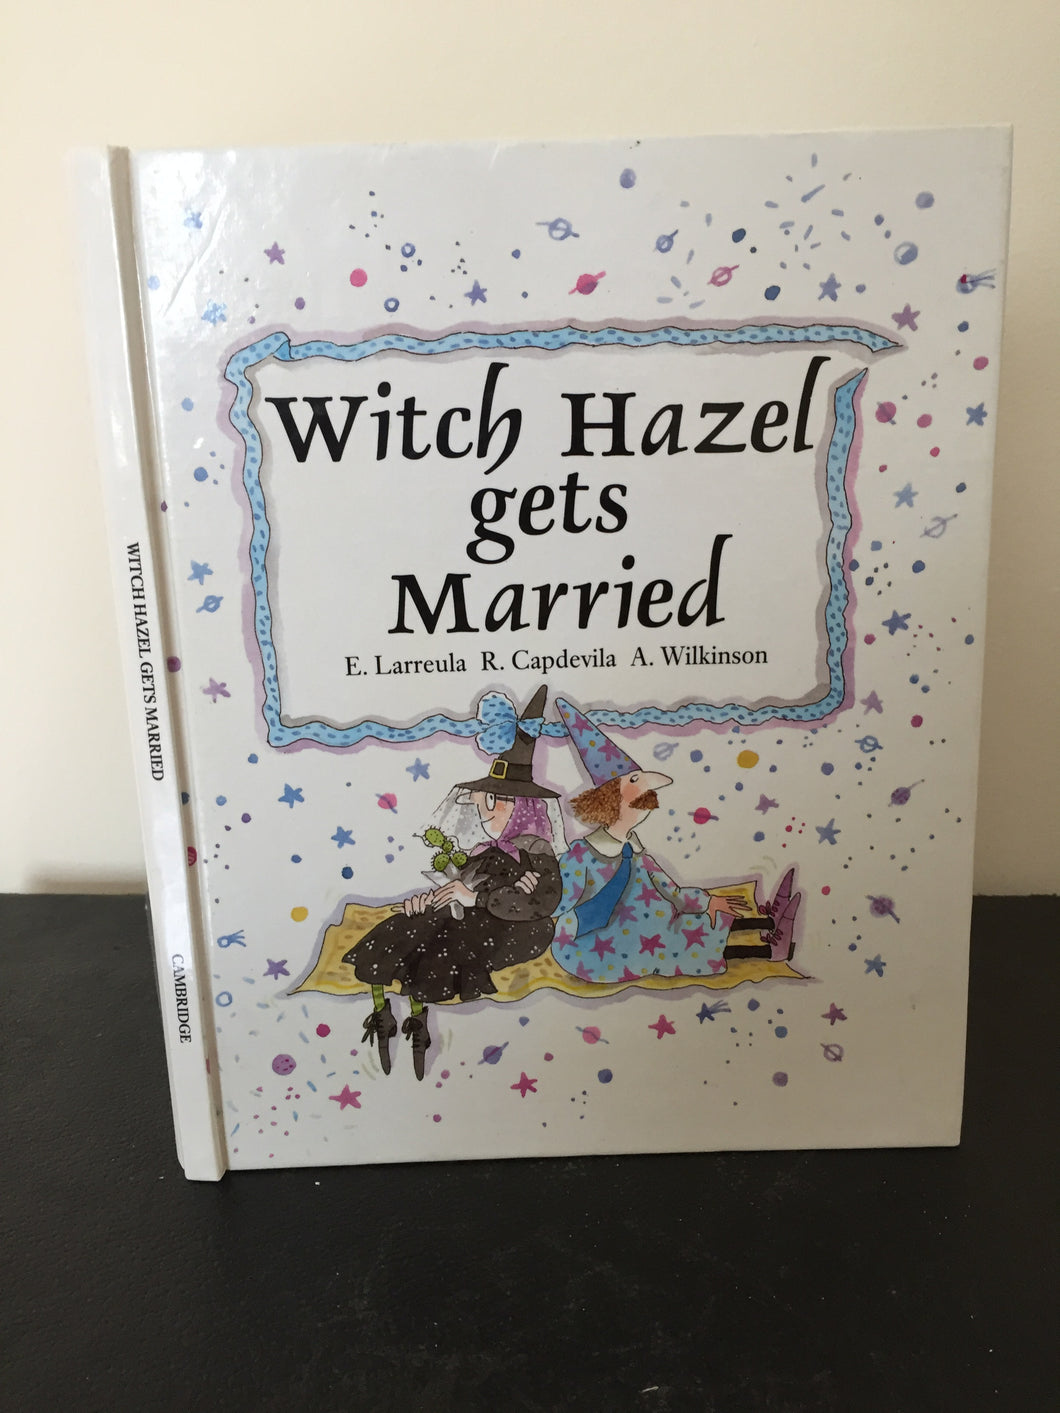 Witch Hazel gets Married